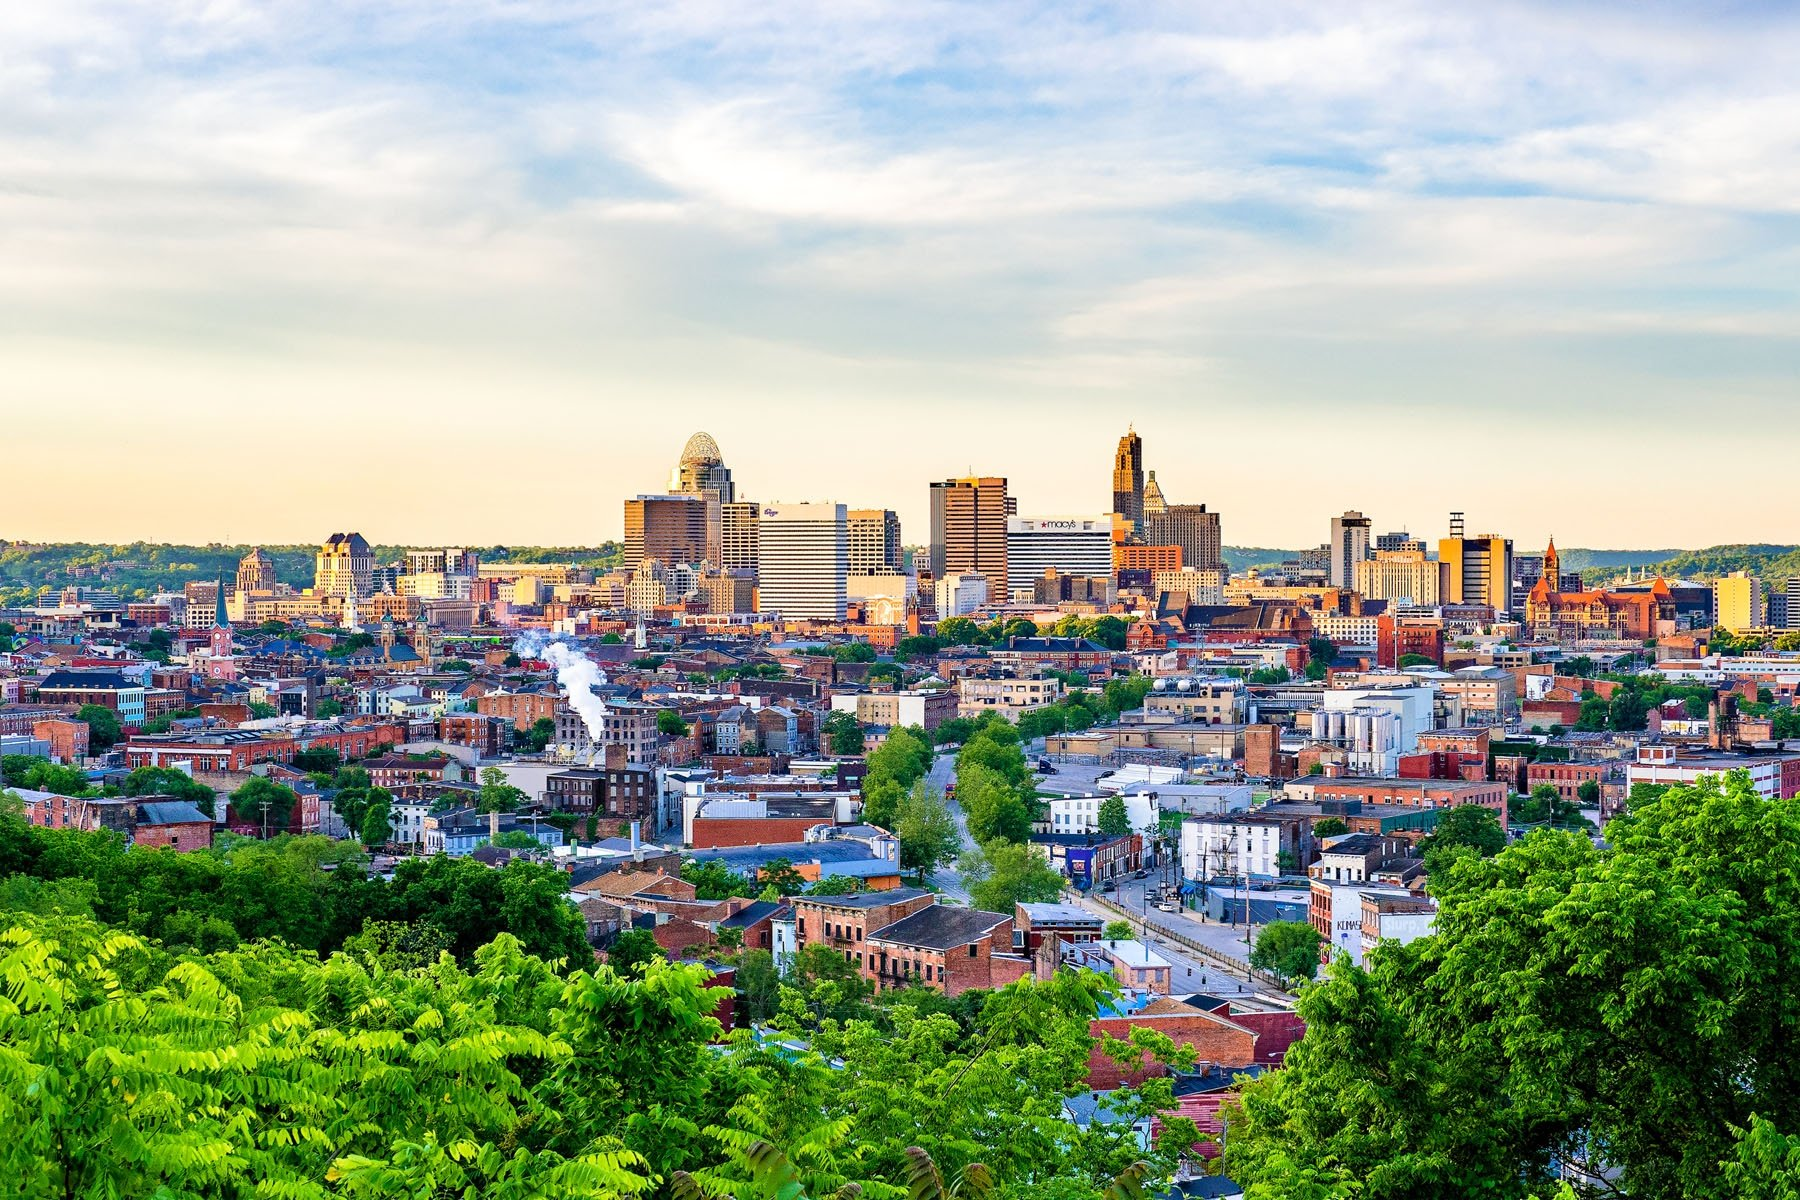 CINCINNATI'S BACKSIDE - This shot was taken from Bellevue Hill Park in Clifton. An early morning shot from the north of Cincinnati with the sun rising in the east.